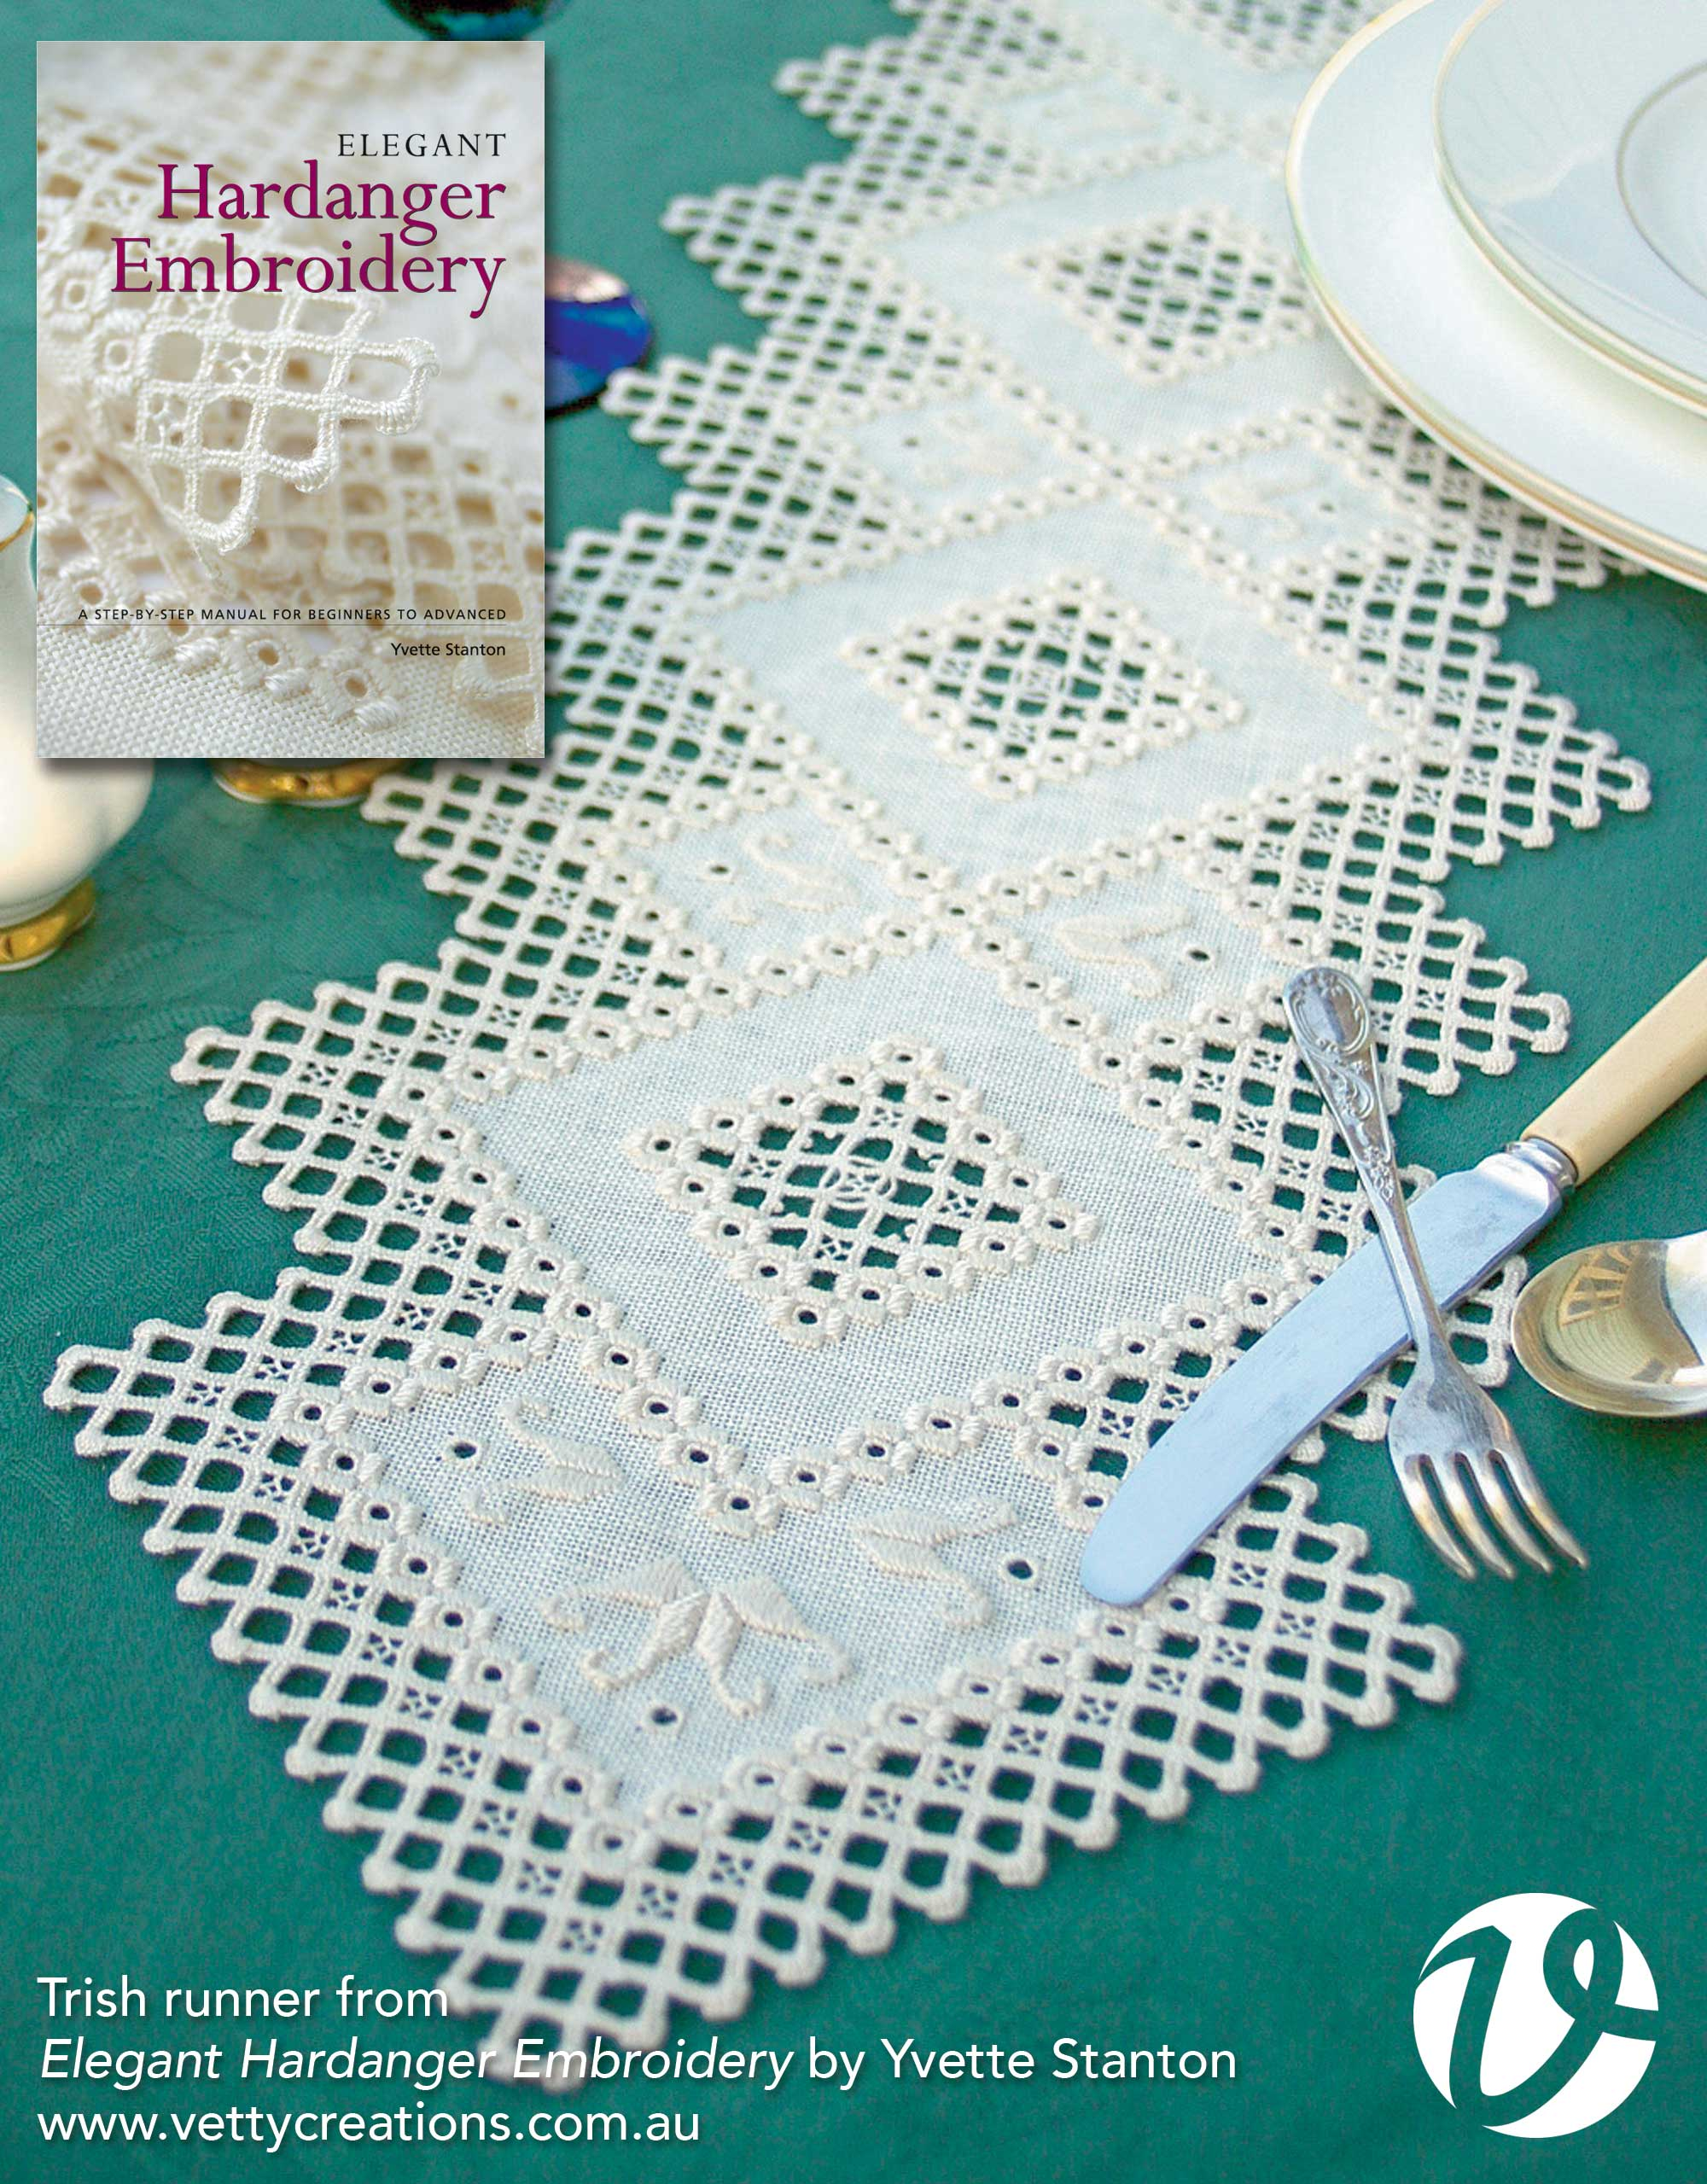 Trish Runner from Elegant Hardanger Embroidery